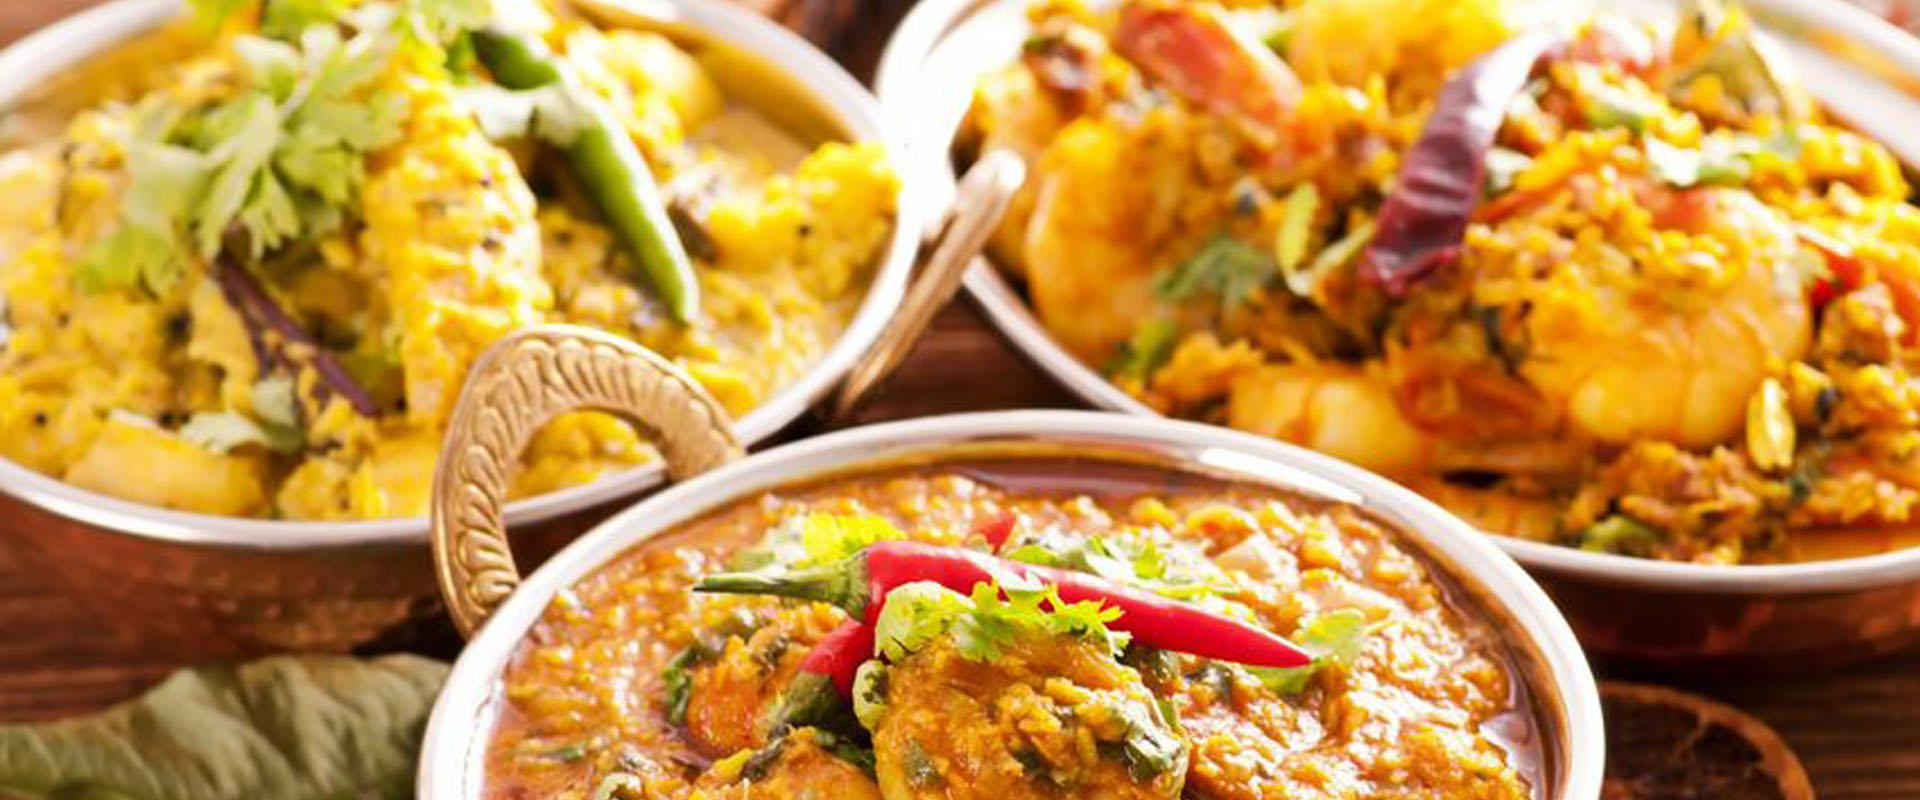 Malabar Junction Restaurant In Bloomsbury Serving South Indian Cuisine